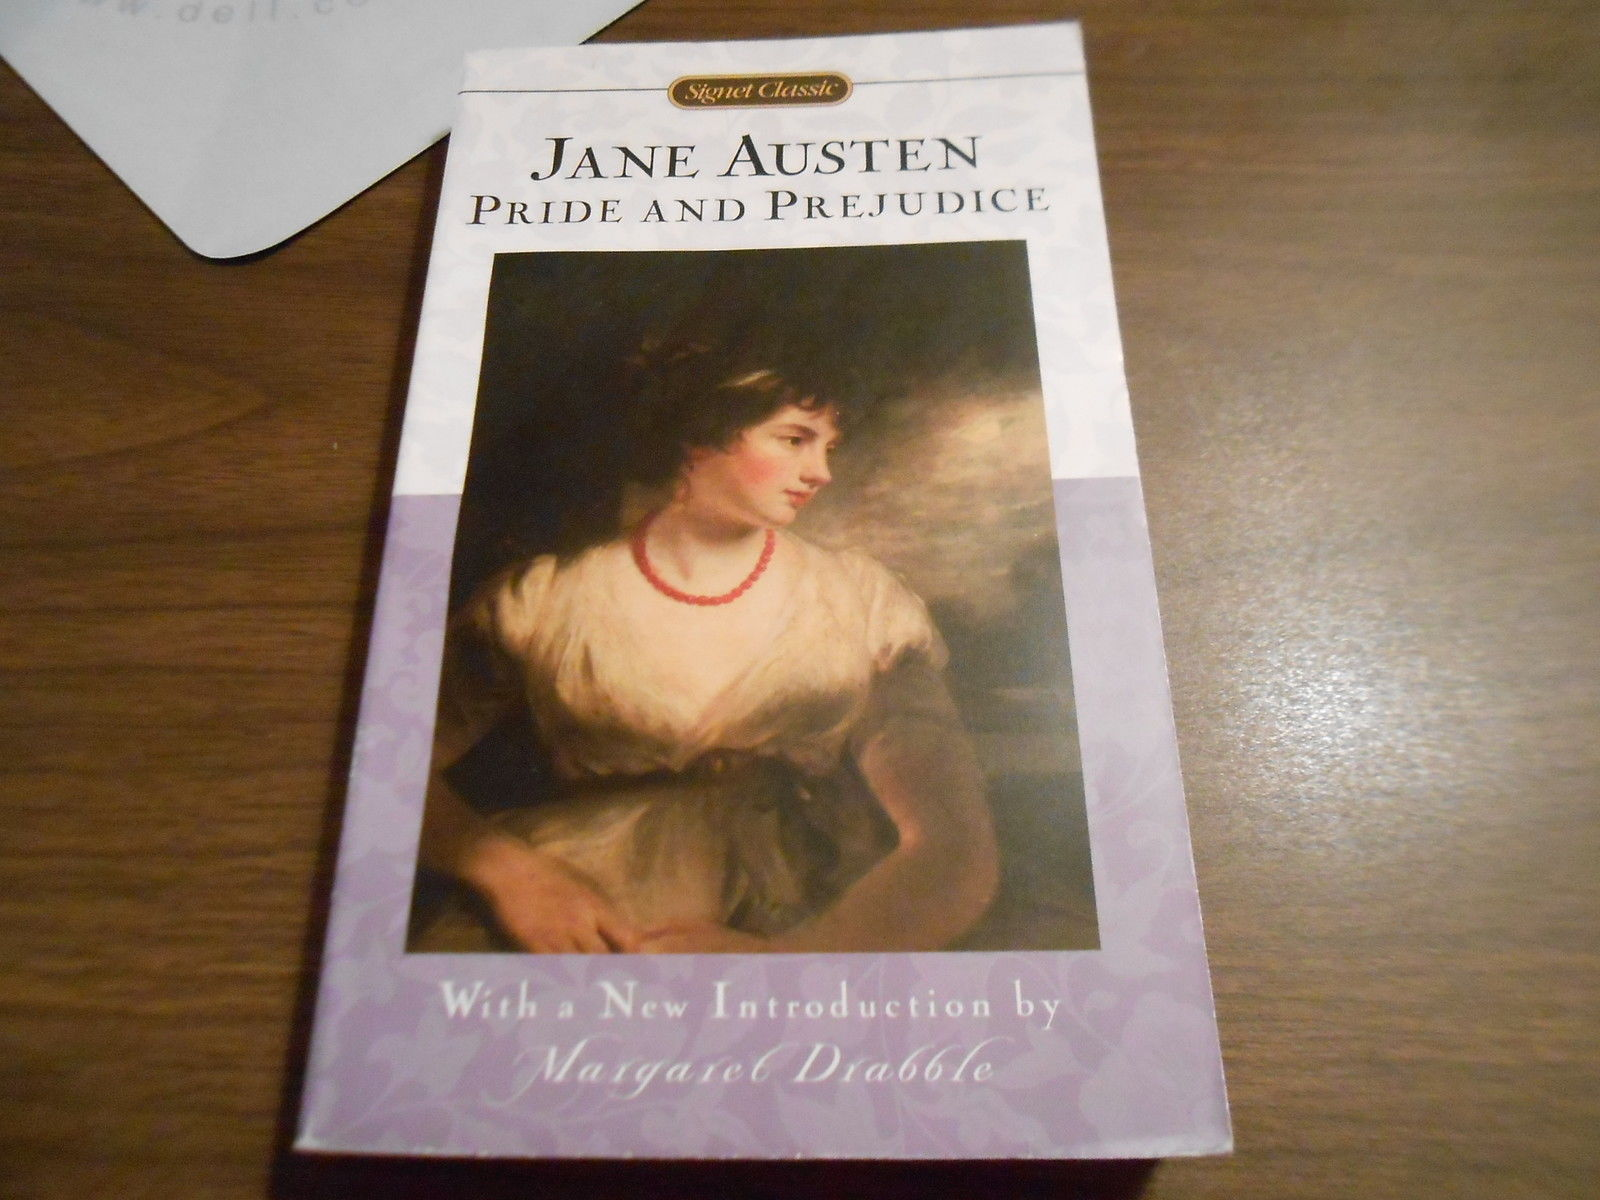 jane austens pride and prejudice essay In jane austen's novel, pride and prejudice, austen does a magnificent job at poking fun of the society in which the novel takes place through sarcastic remarks and witty satire the title of jane austen's novel plays a great role in the plot, it masterly illustrates the emotions that most of the characters go through.